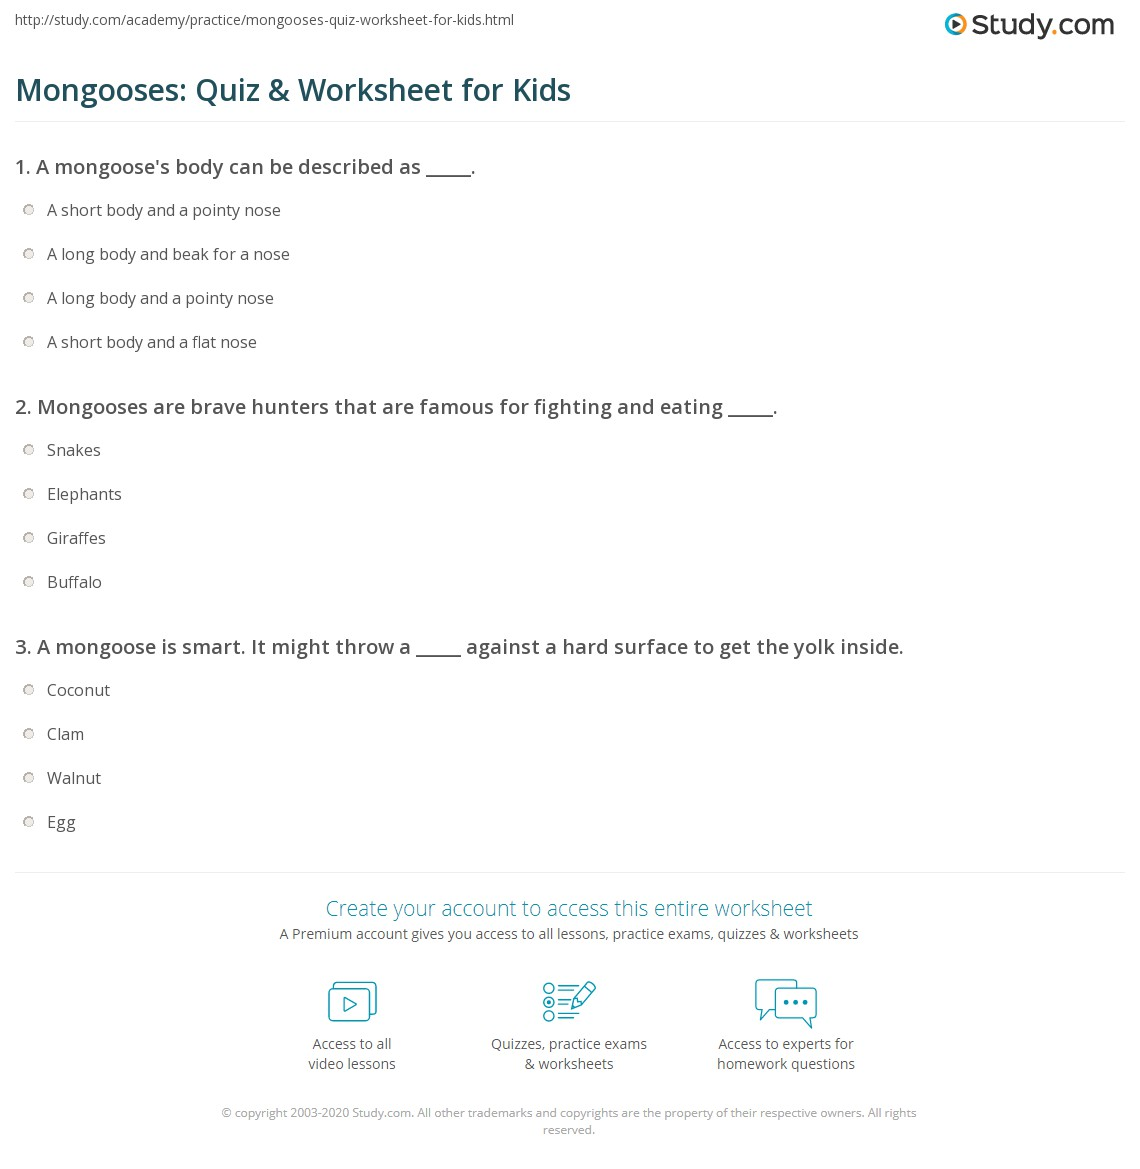 Mongooses Quiz Amp Worksheet For Kids